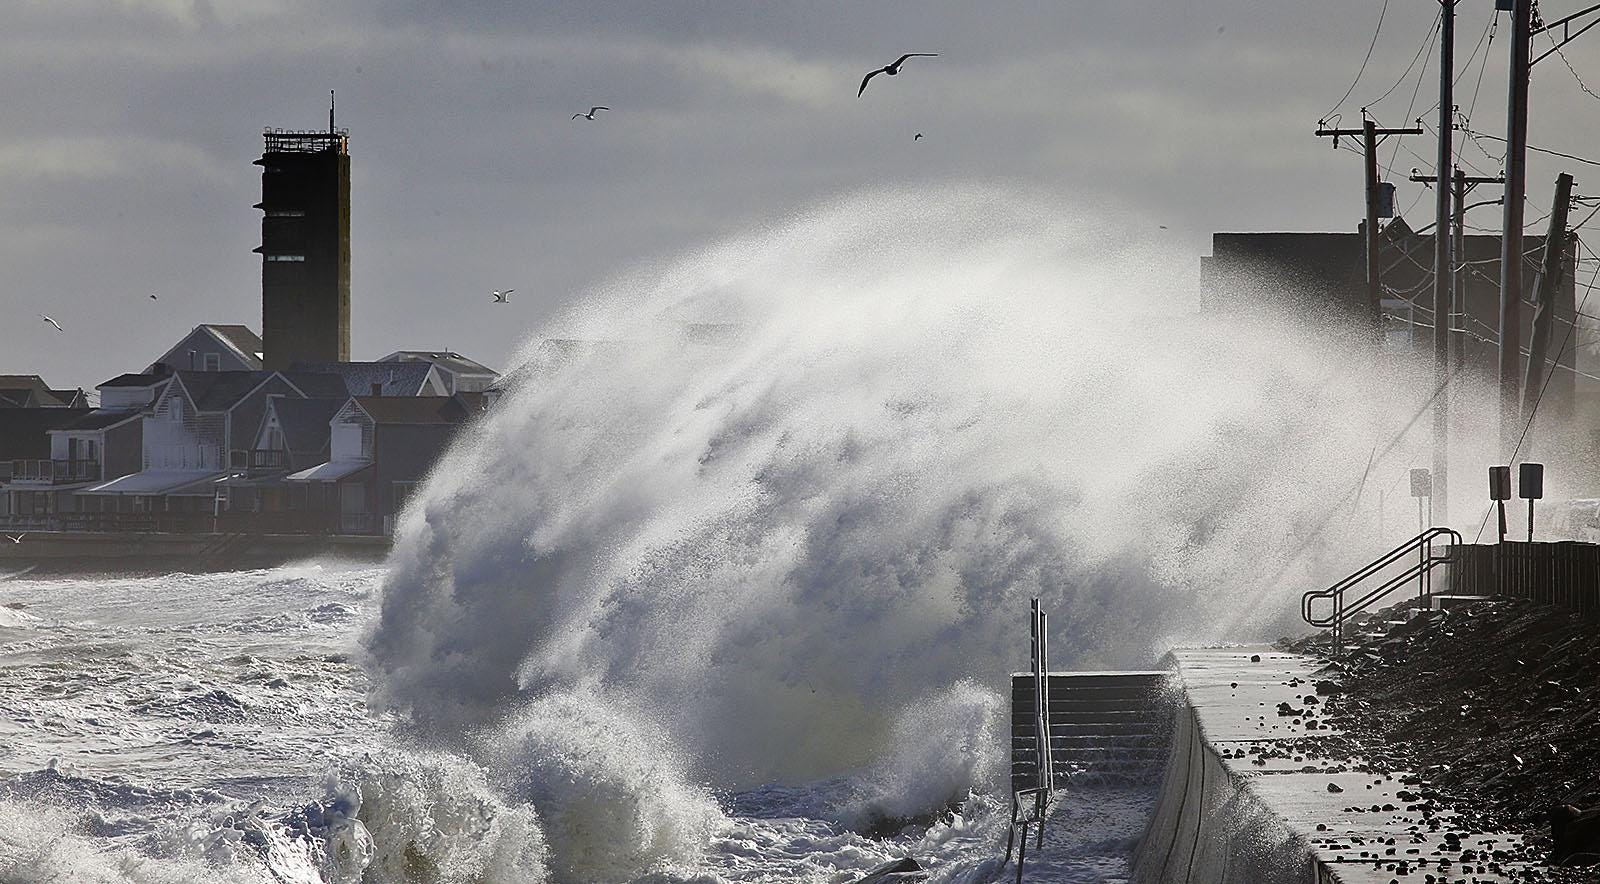 Spray soars as a big wave hits the seawall in the Ocean Bluff section of Marshfield during a Jan. 2016 storm.